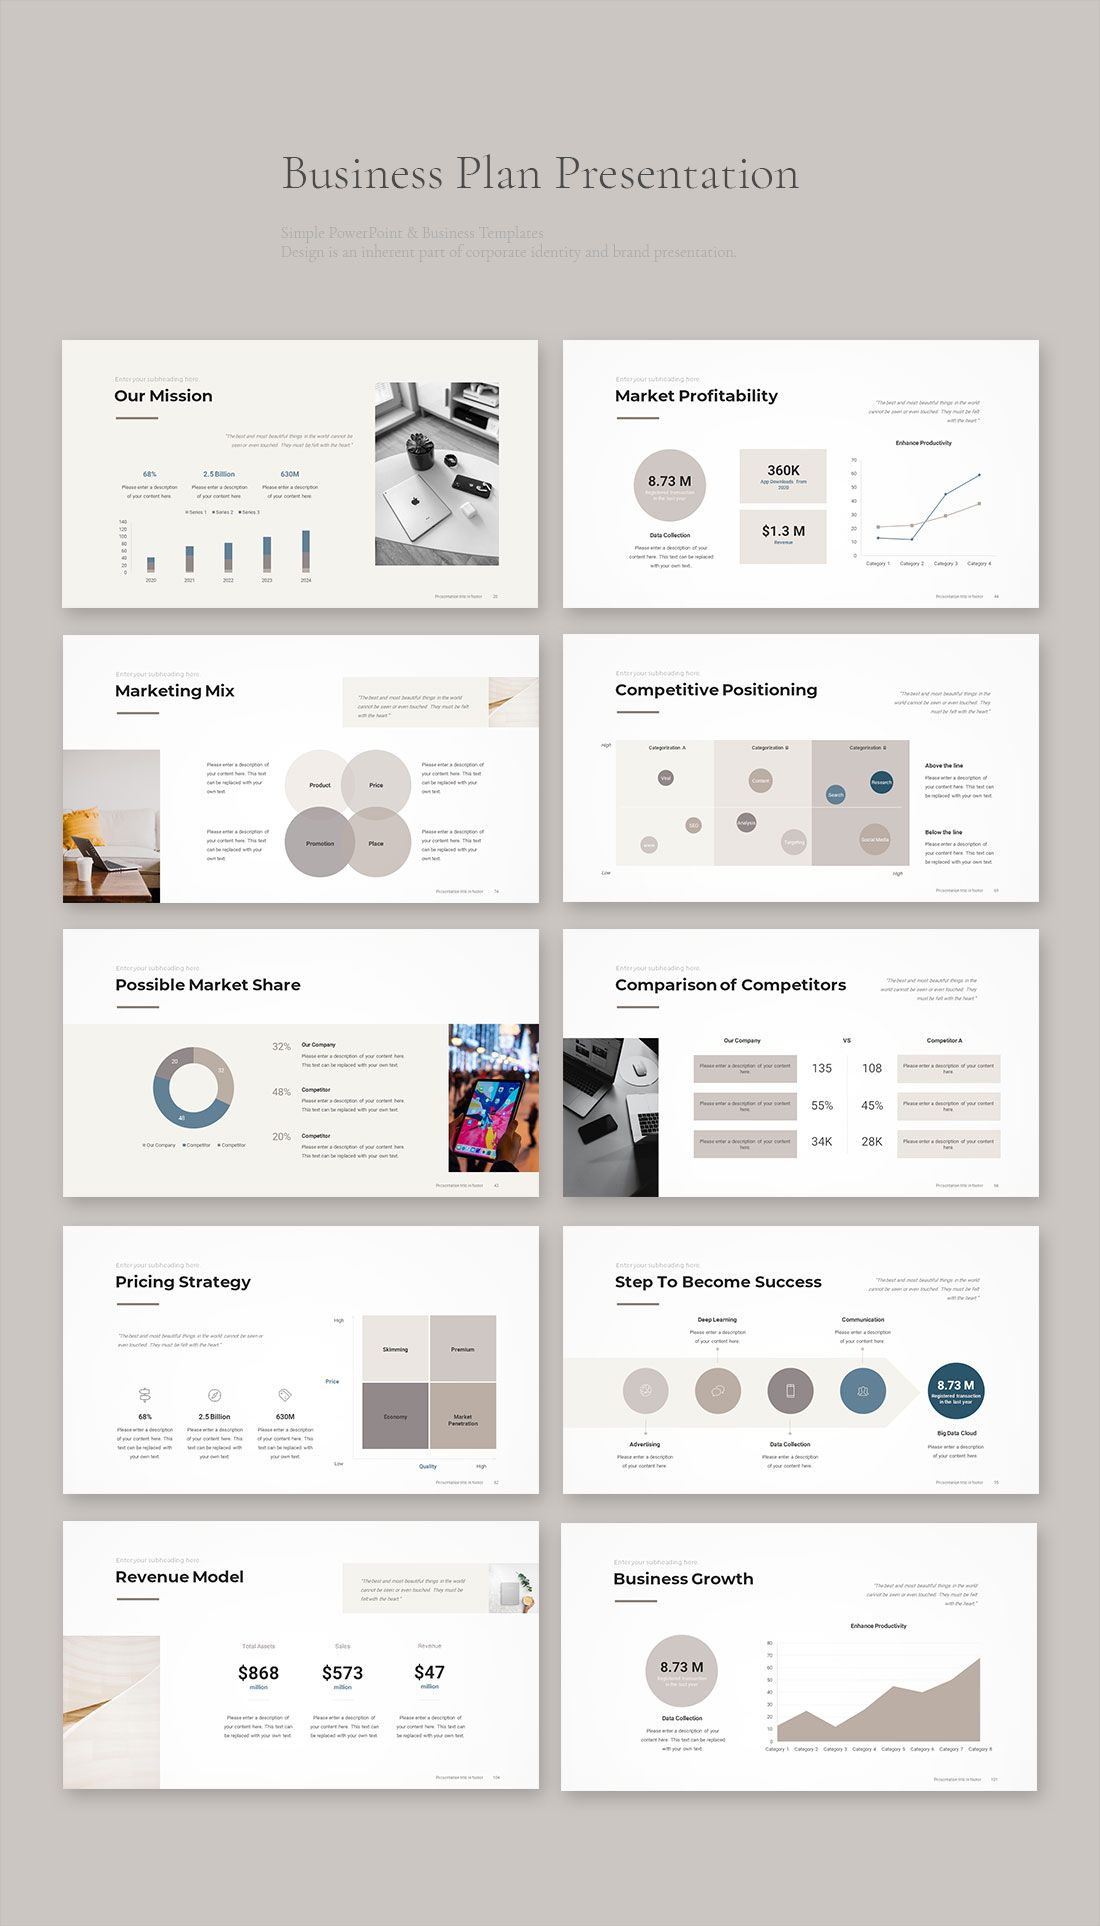 Business Plan PowerPoint Template 2020 Download